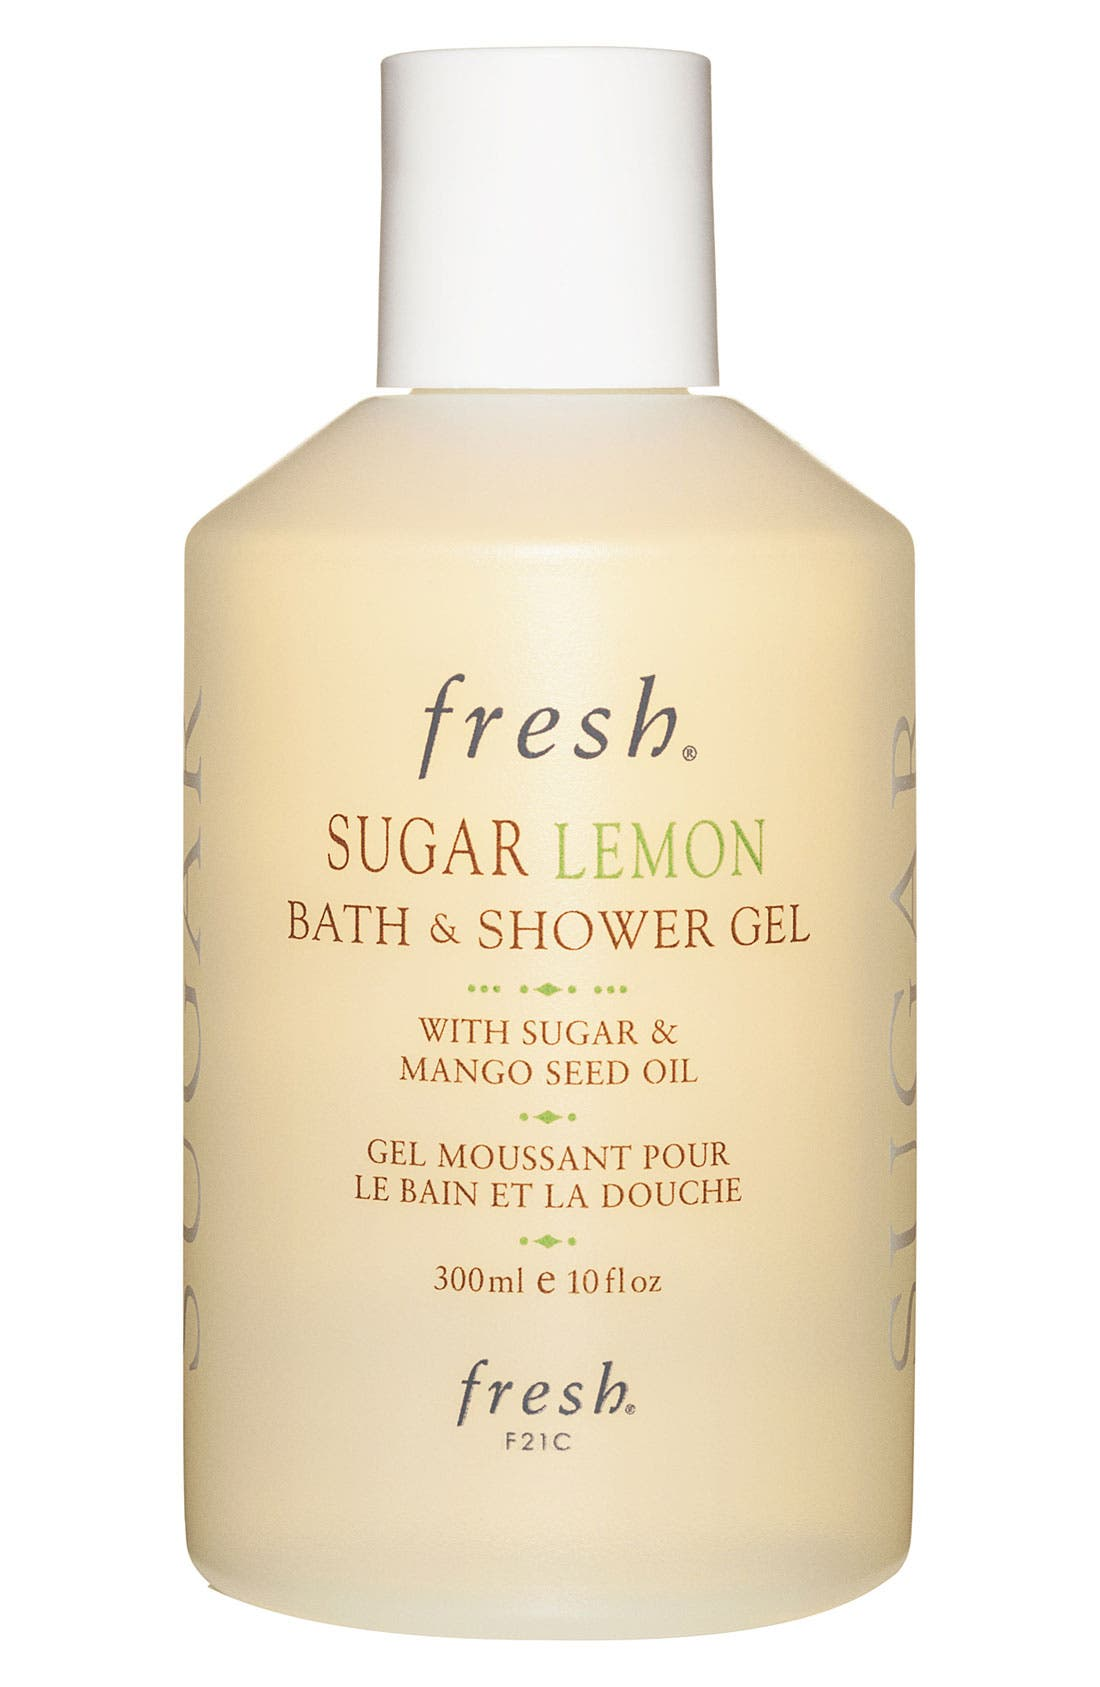 Fresh® Sugar Lemon Bath & Shower Gel